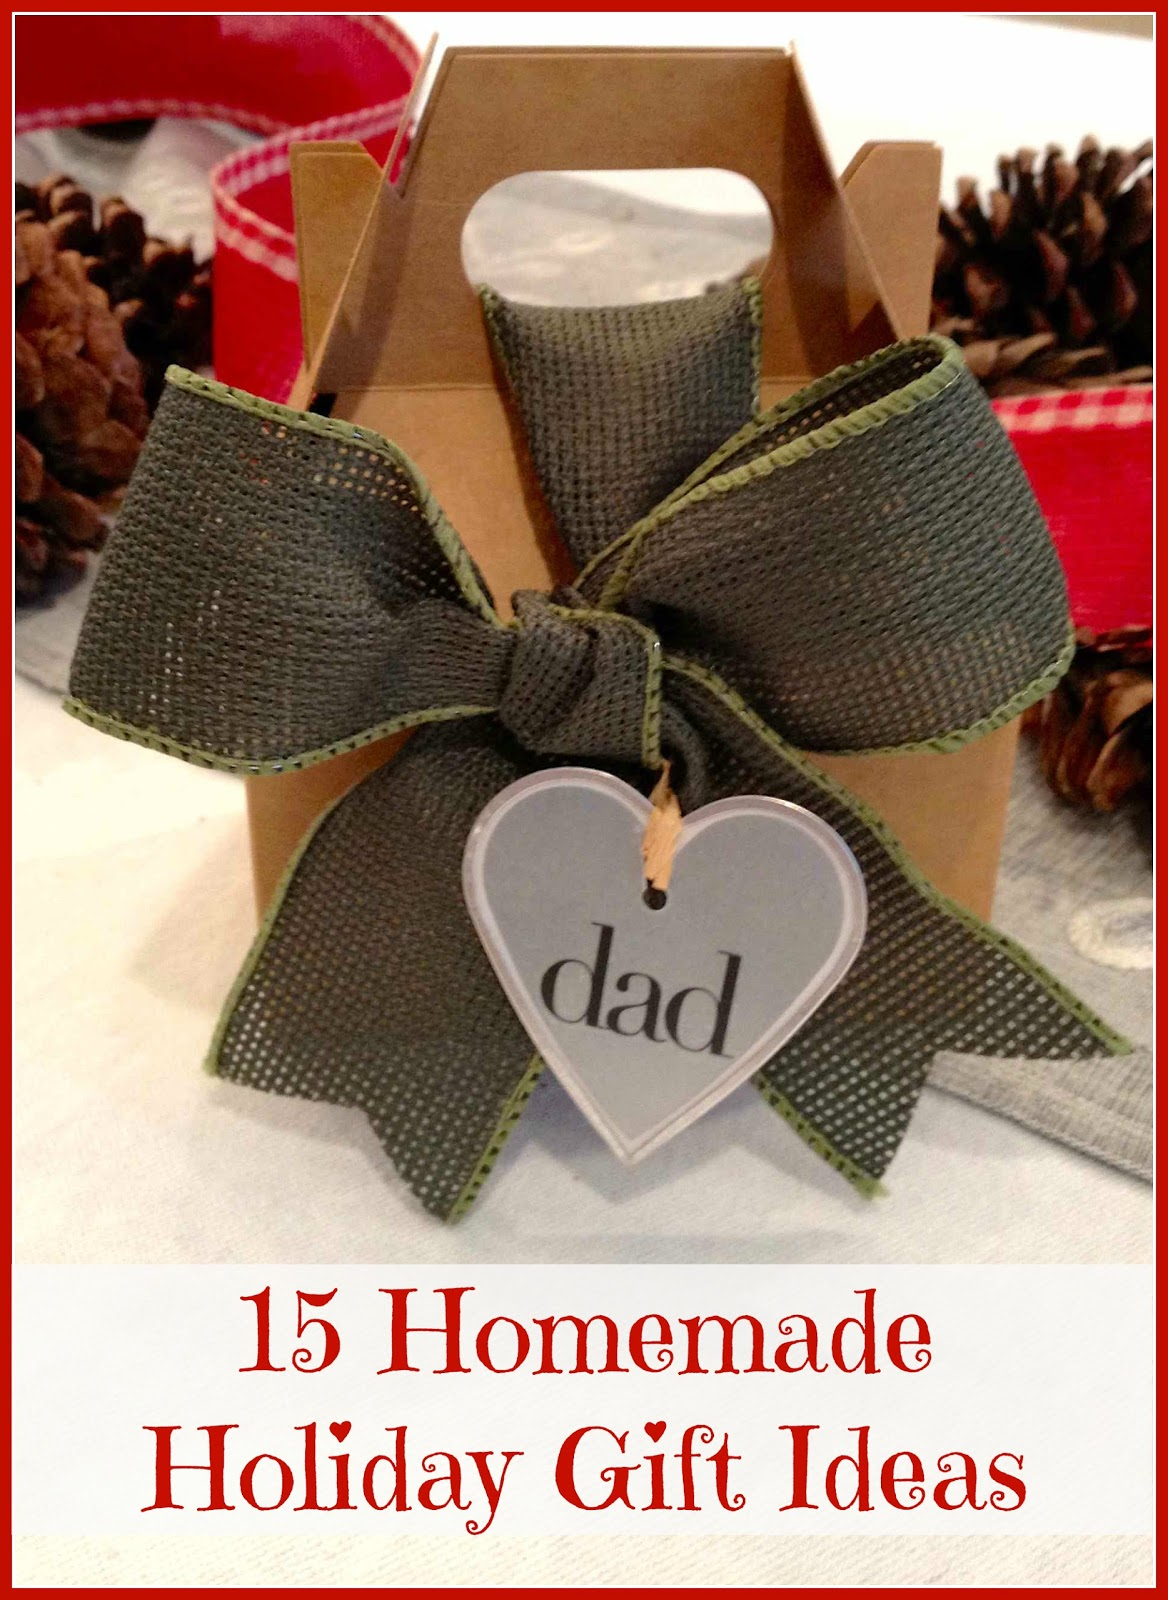 Home Design Image Ideas Homemade Xmas Present Ideas